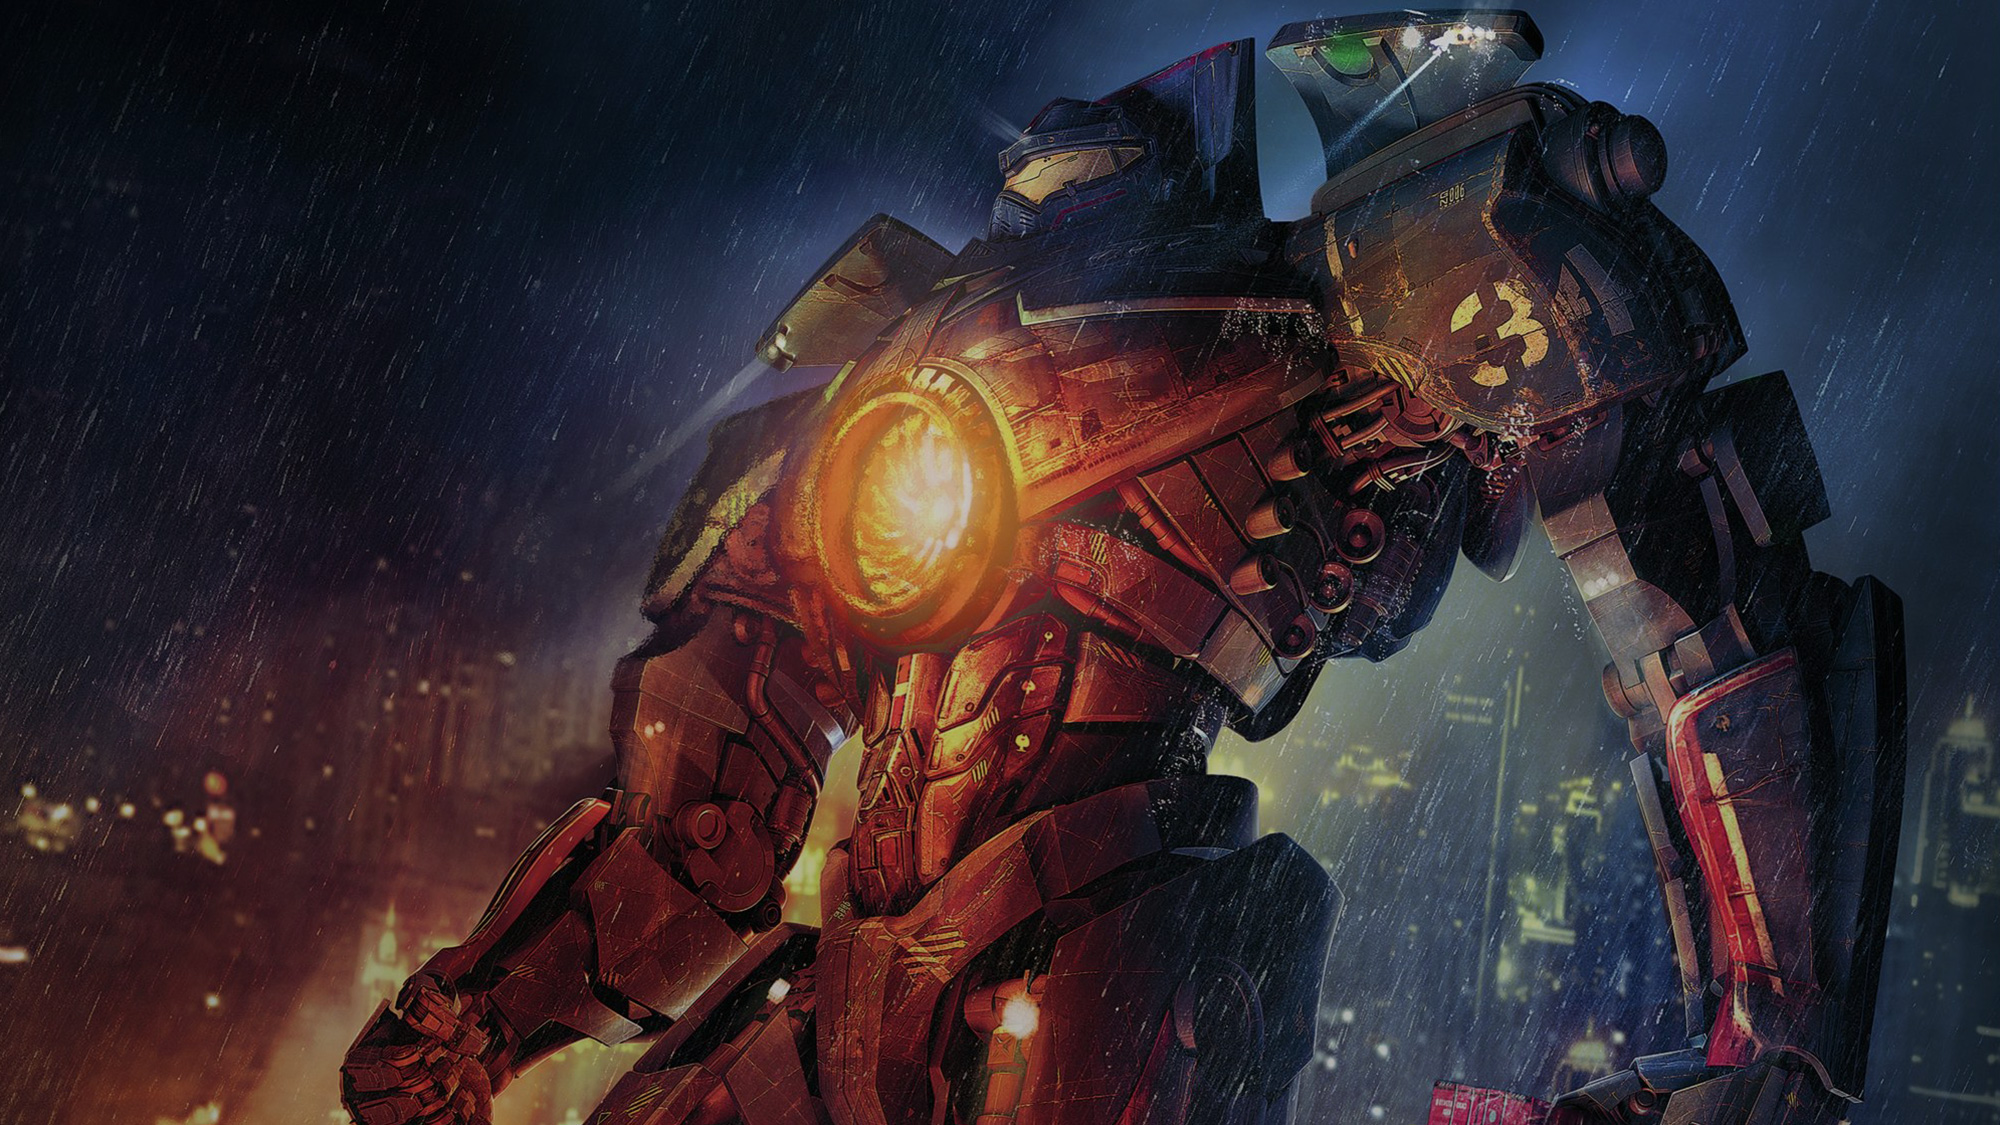 Get Pacific Rim for $4.99